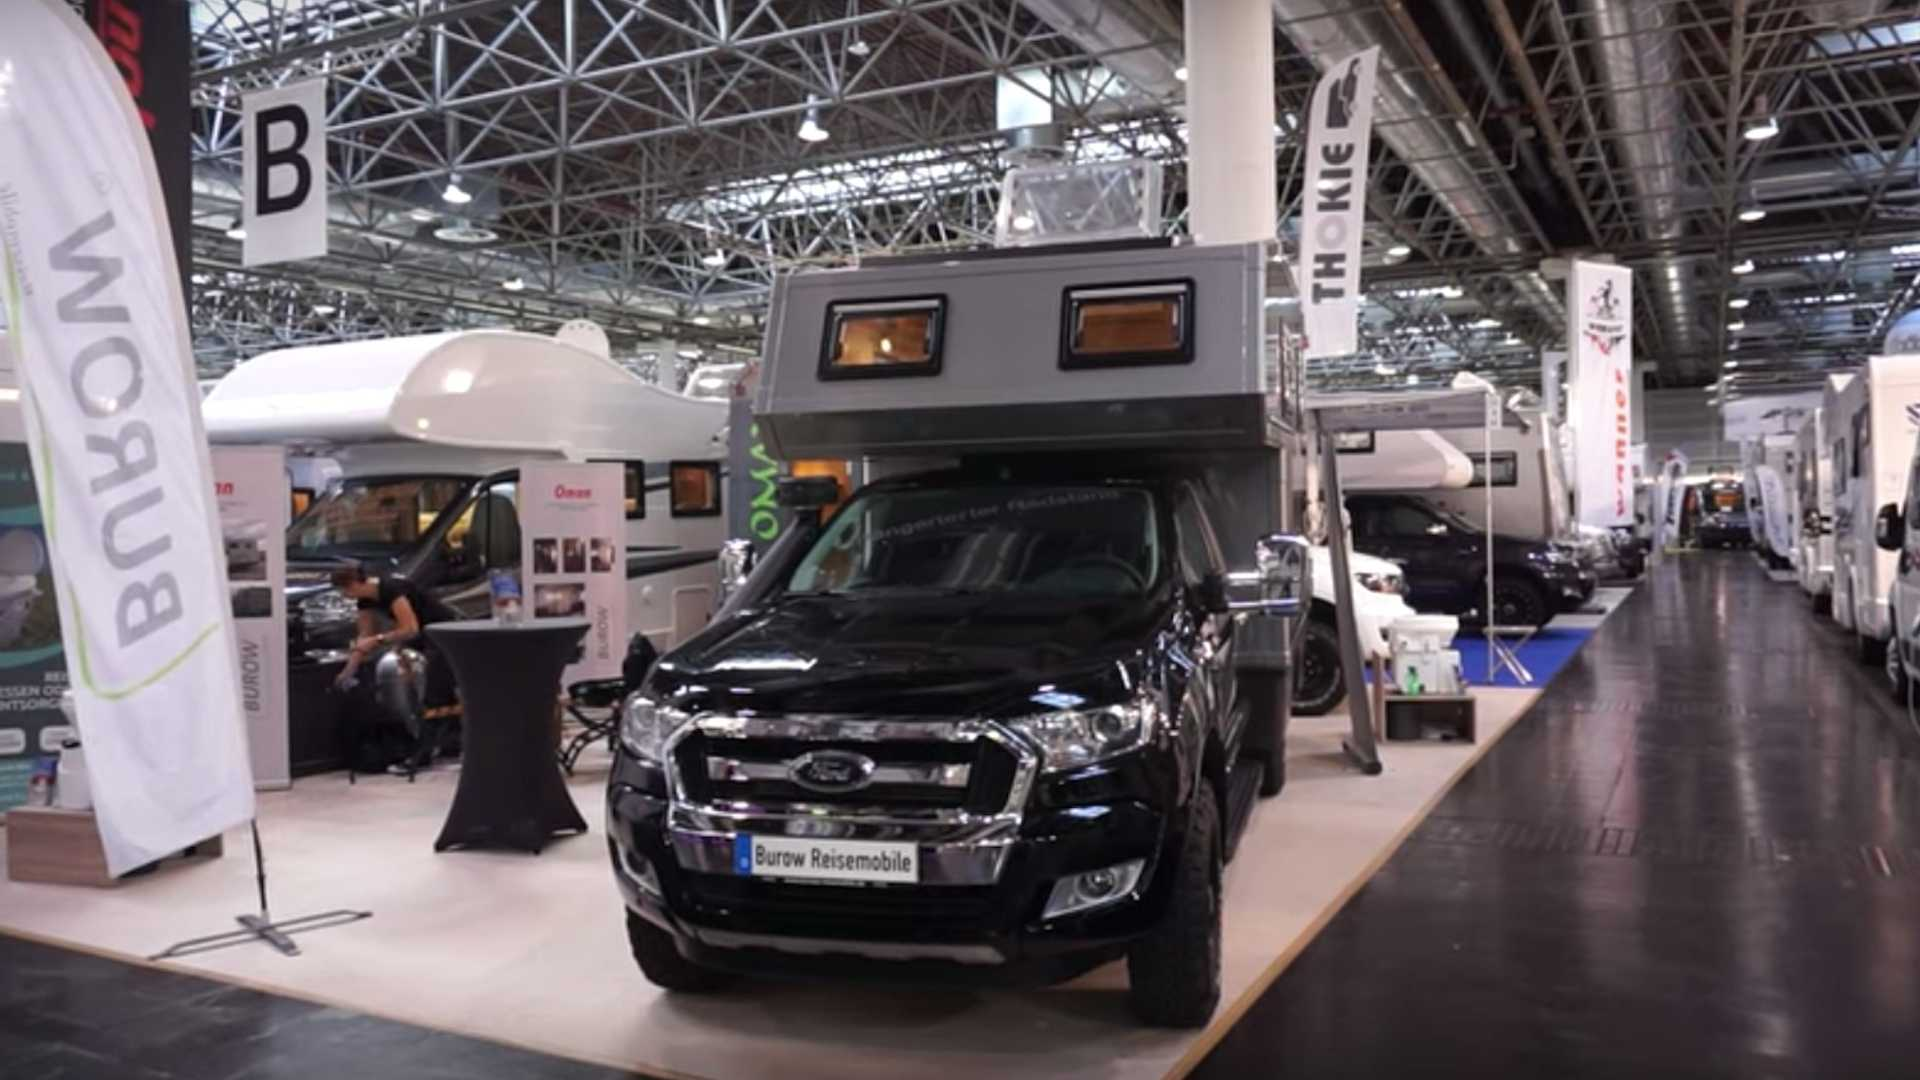 Burow Ford Ranger Oman 4x4 Camper Makes Clever Use Of Space